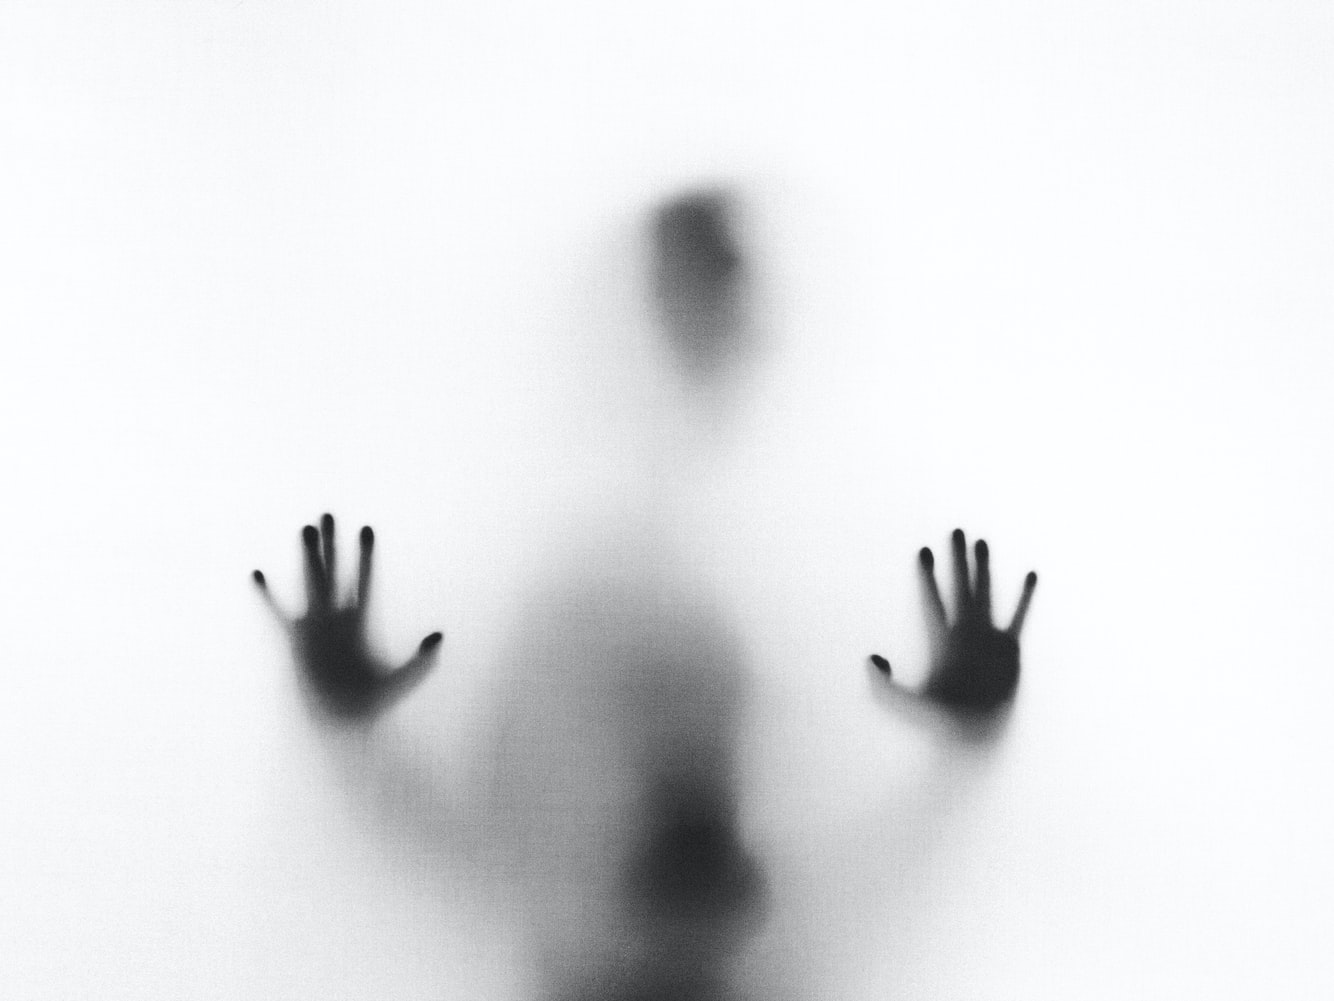 A human silhouette against a white background